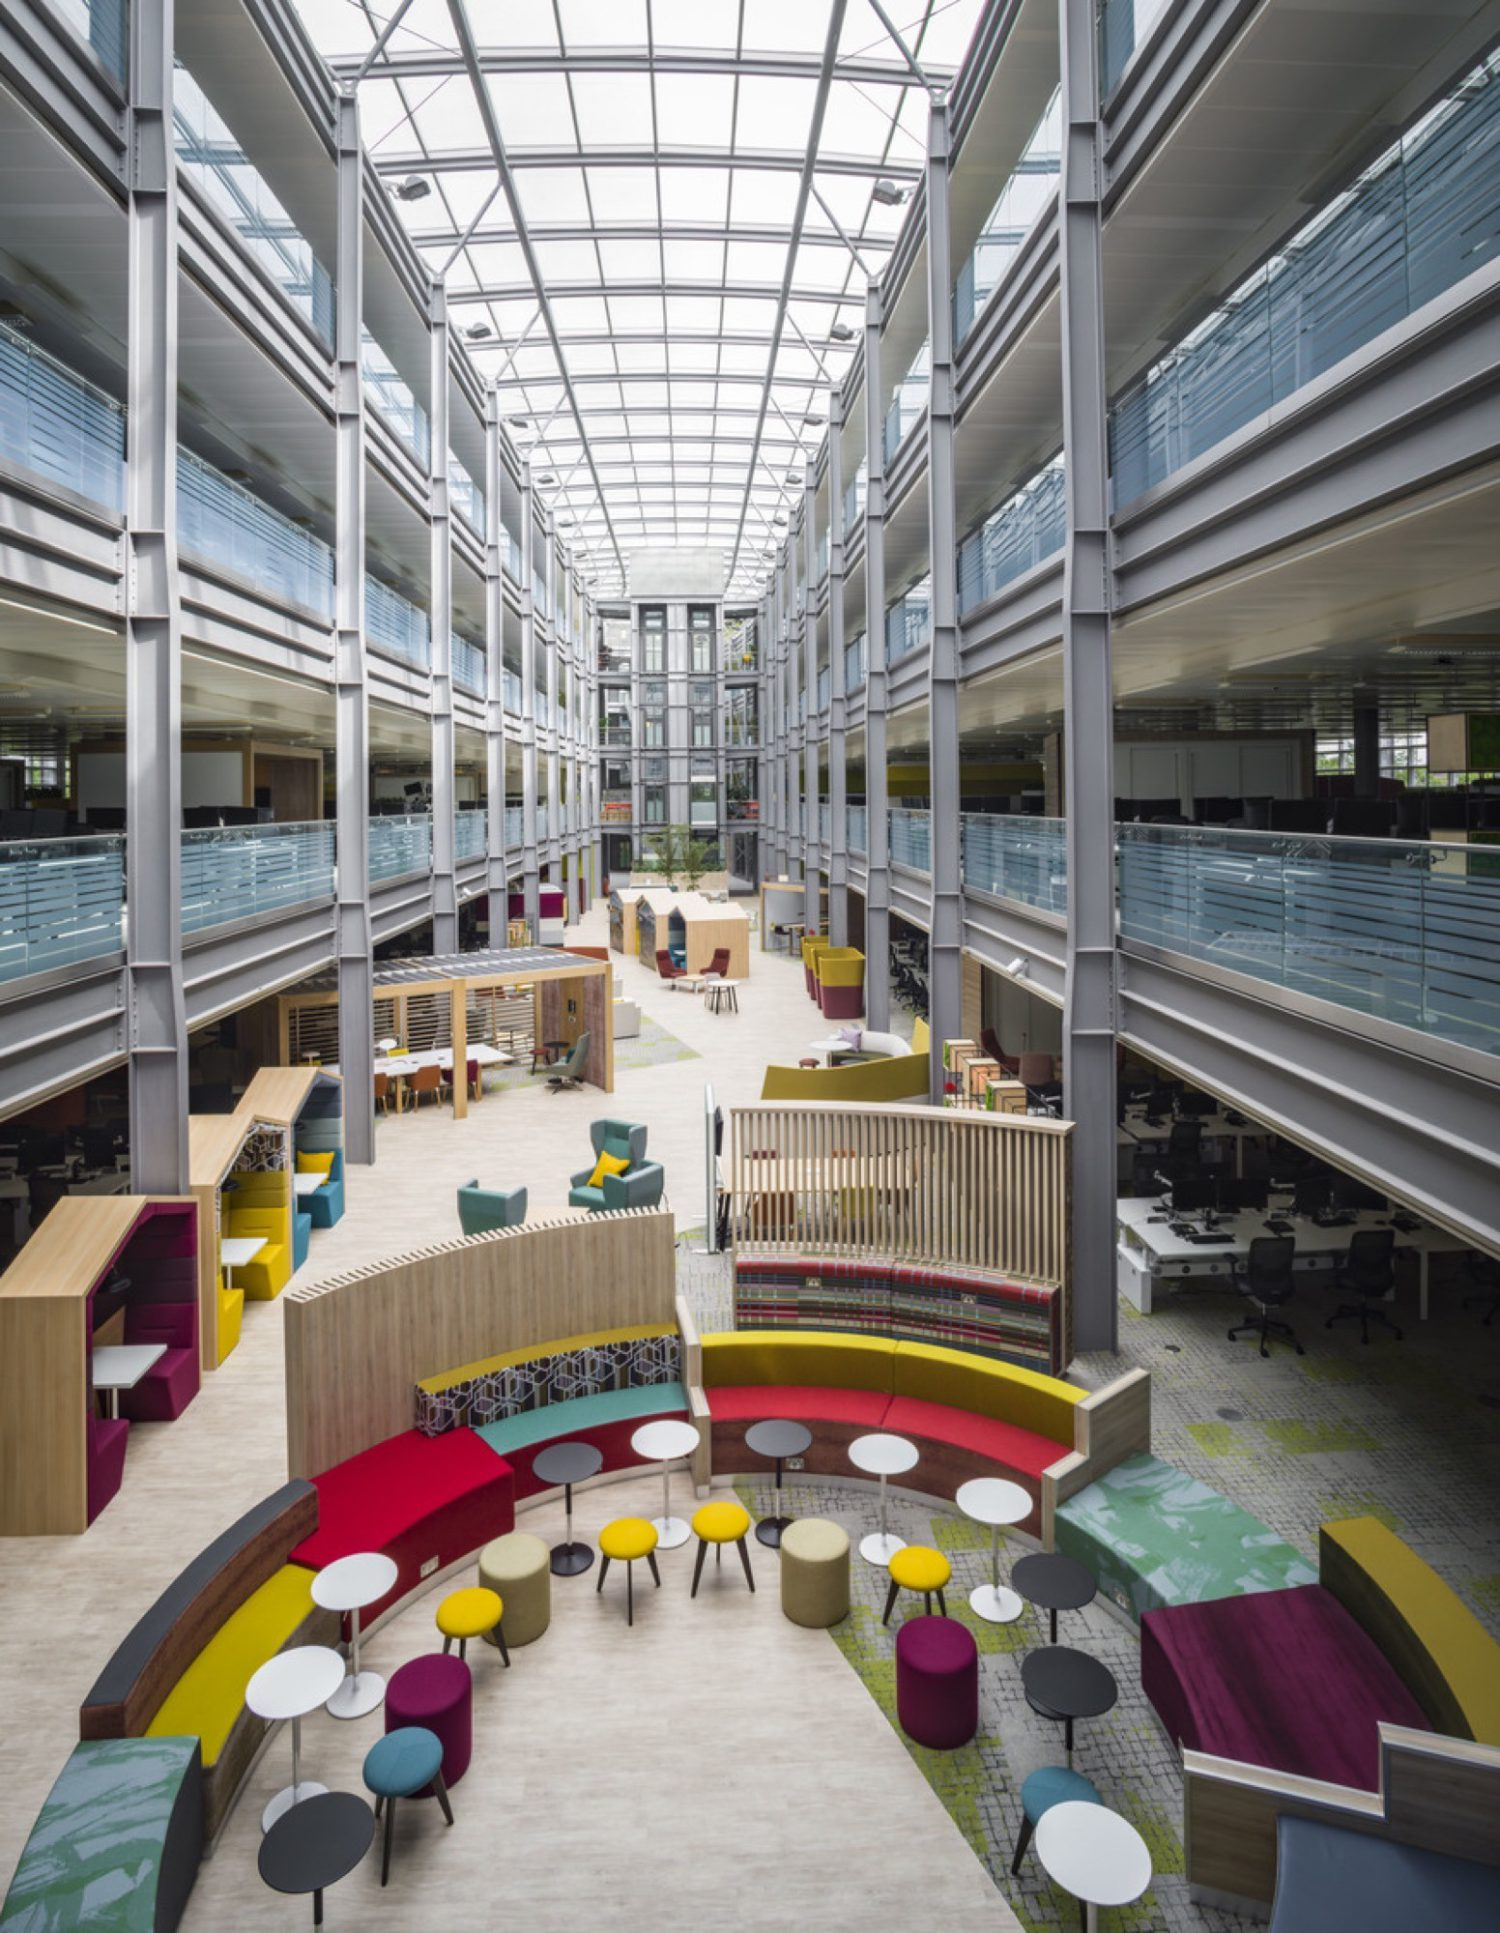 HMRC Benton Atrium in office fit out